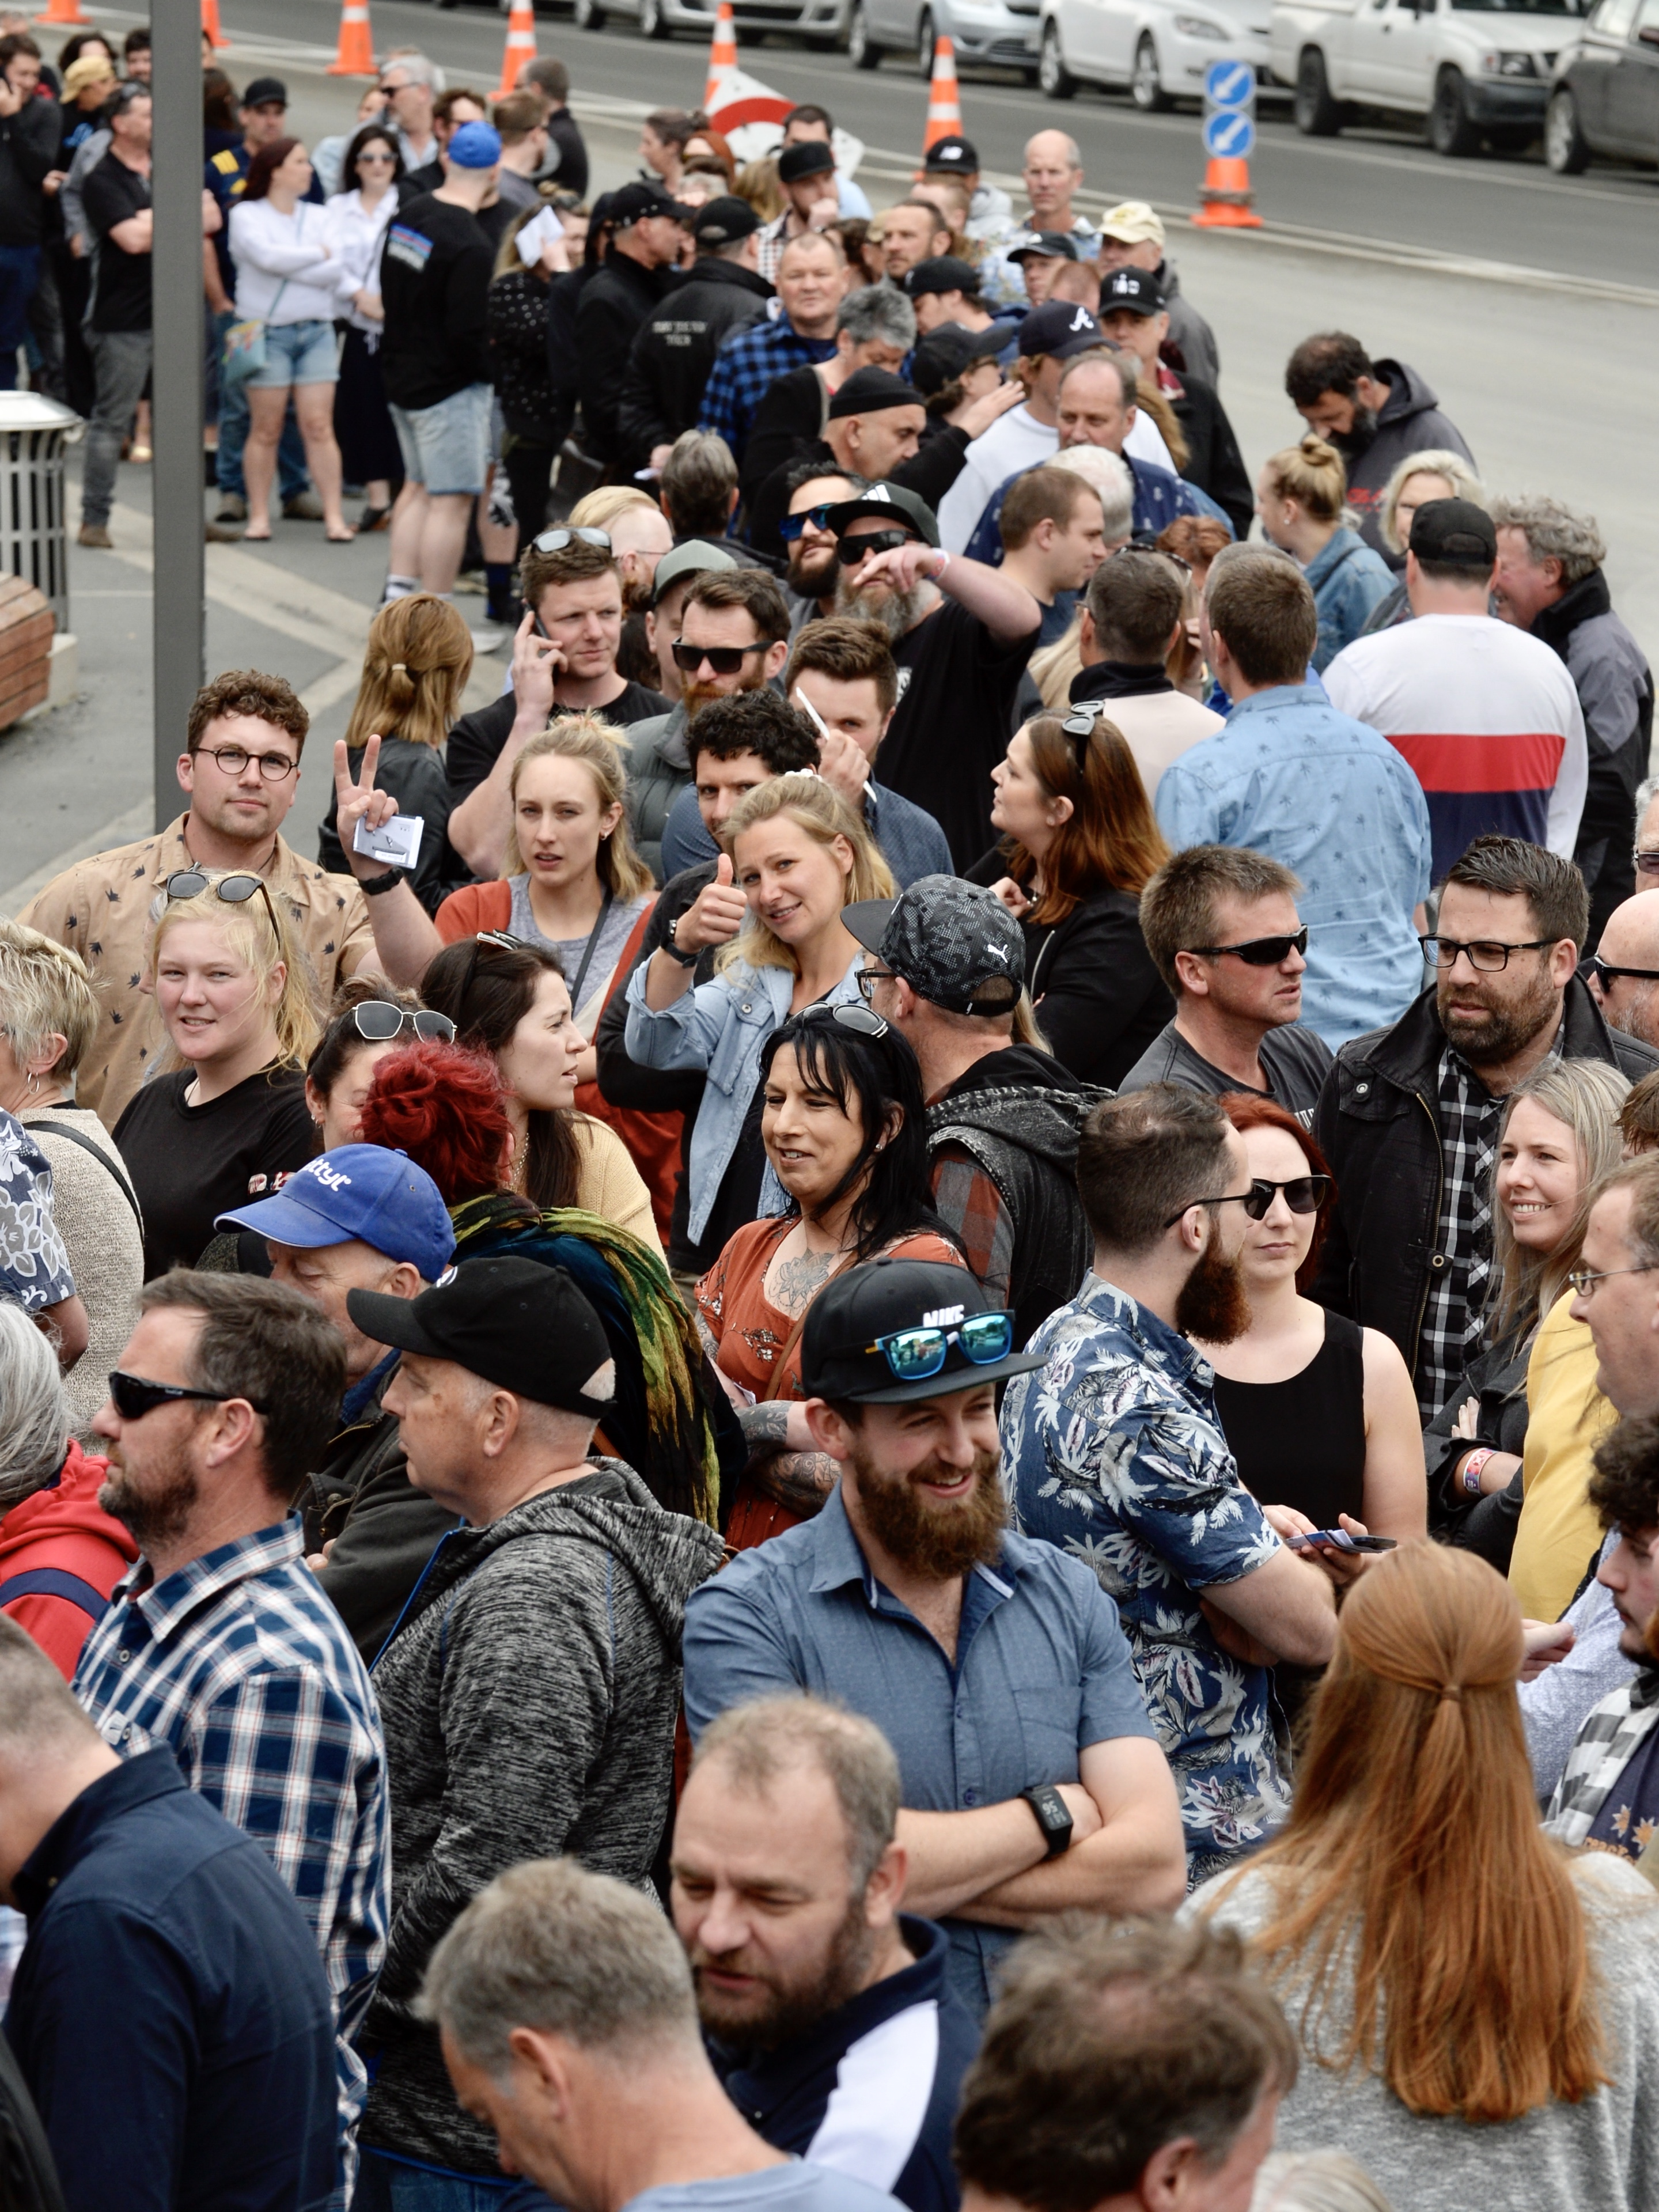 Hundreds are lining up to get into the stadium for this year's Dunedin Craft Beer and Food Festival. Photo: Gerard O'Brien